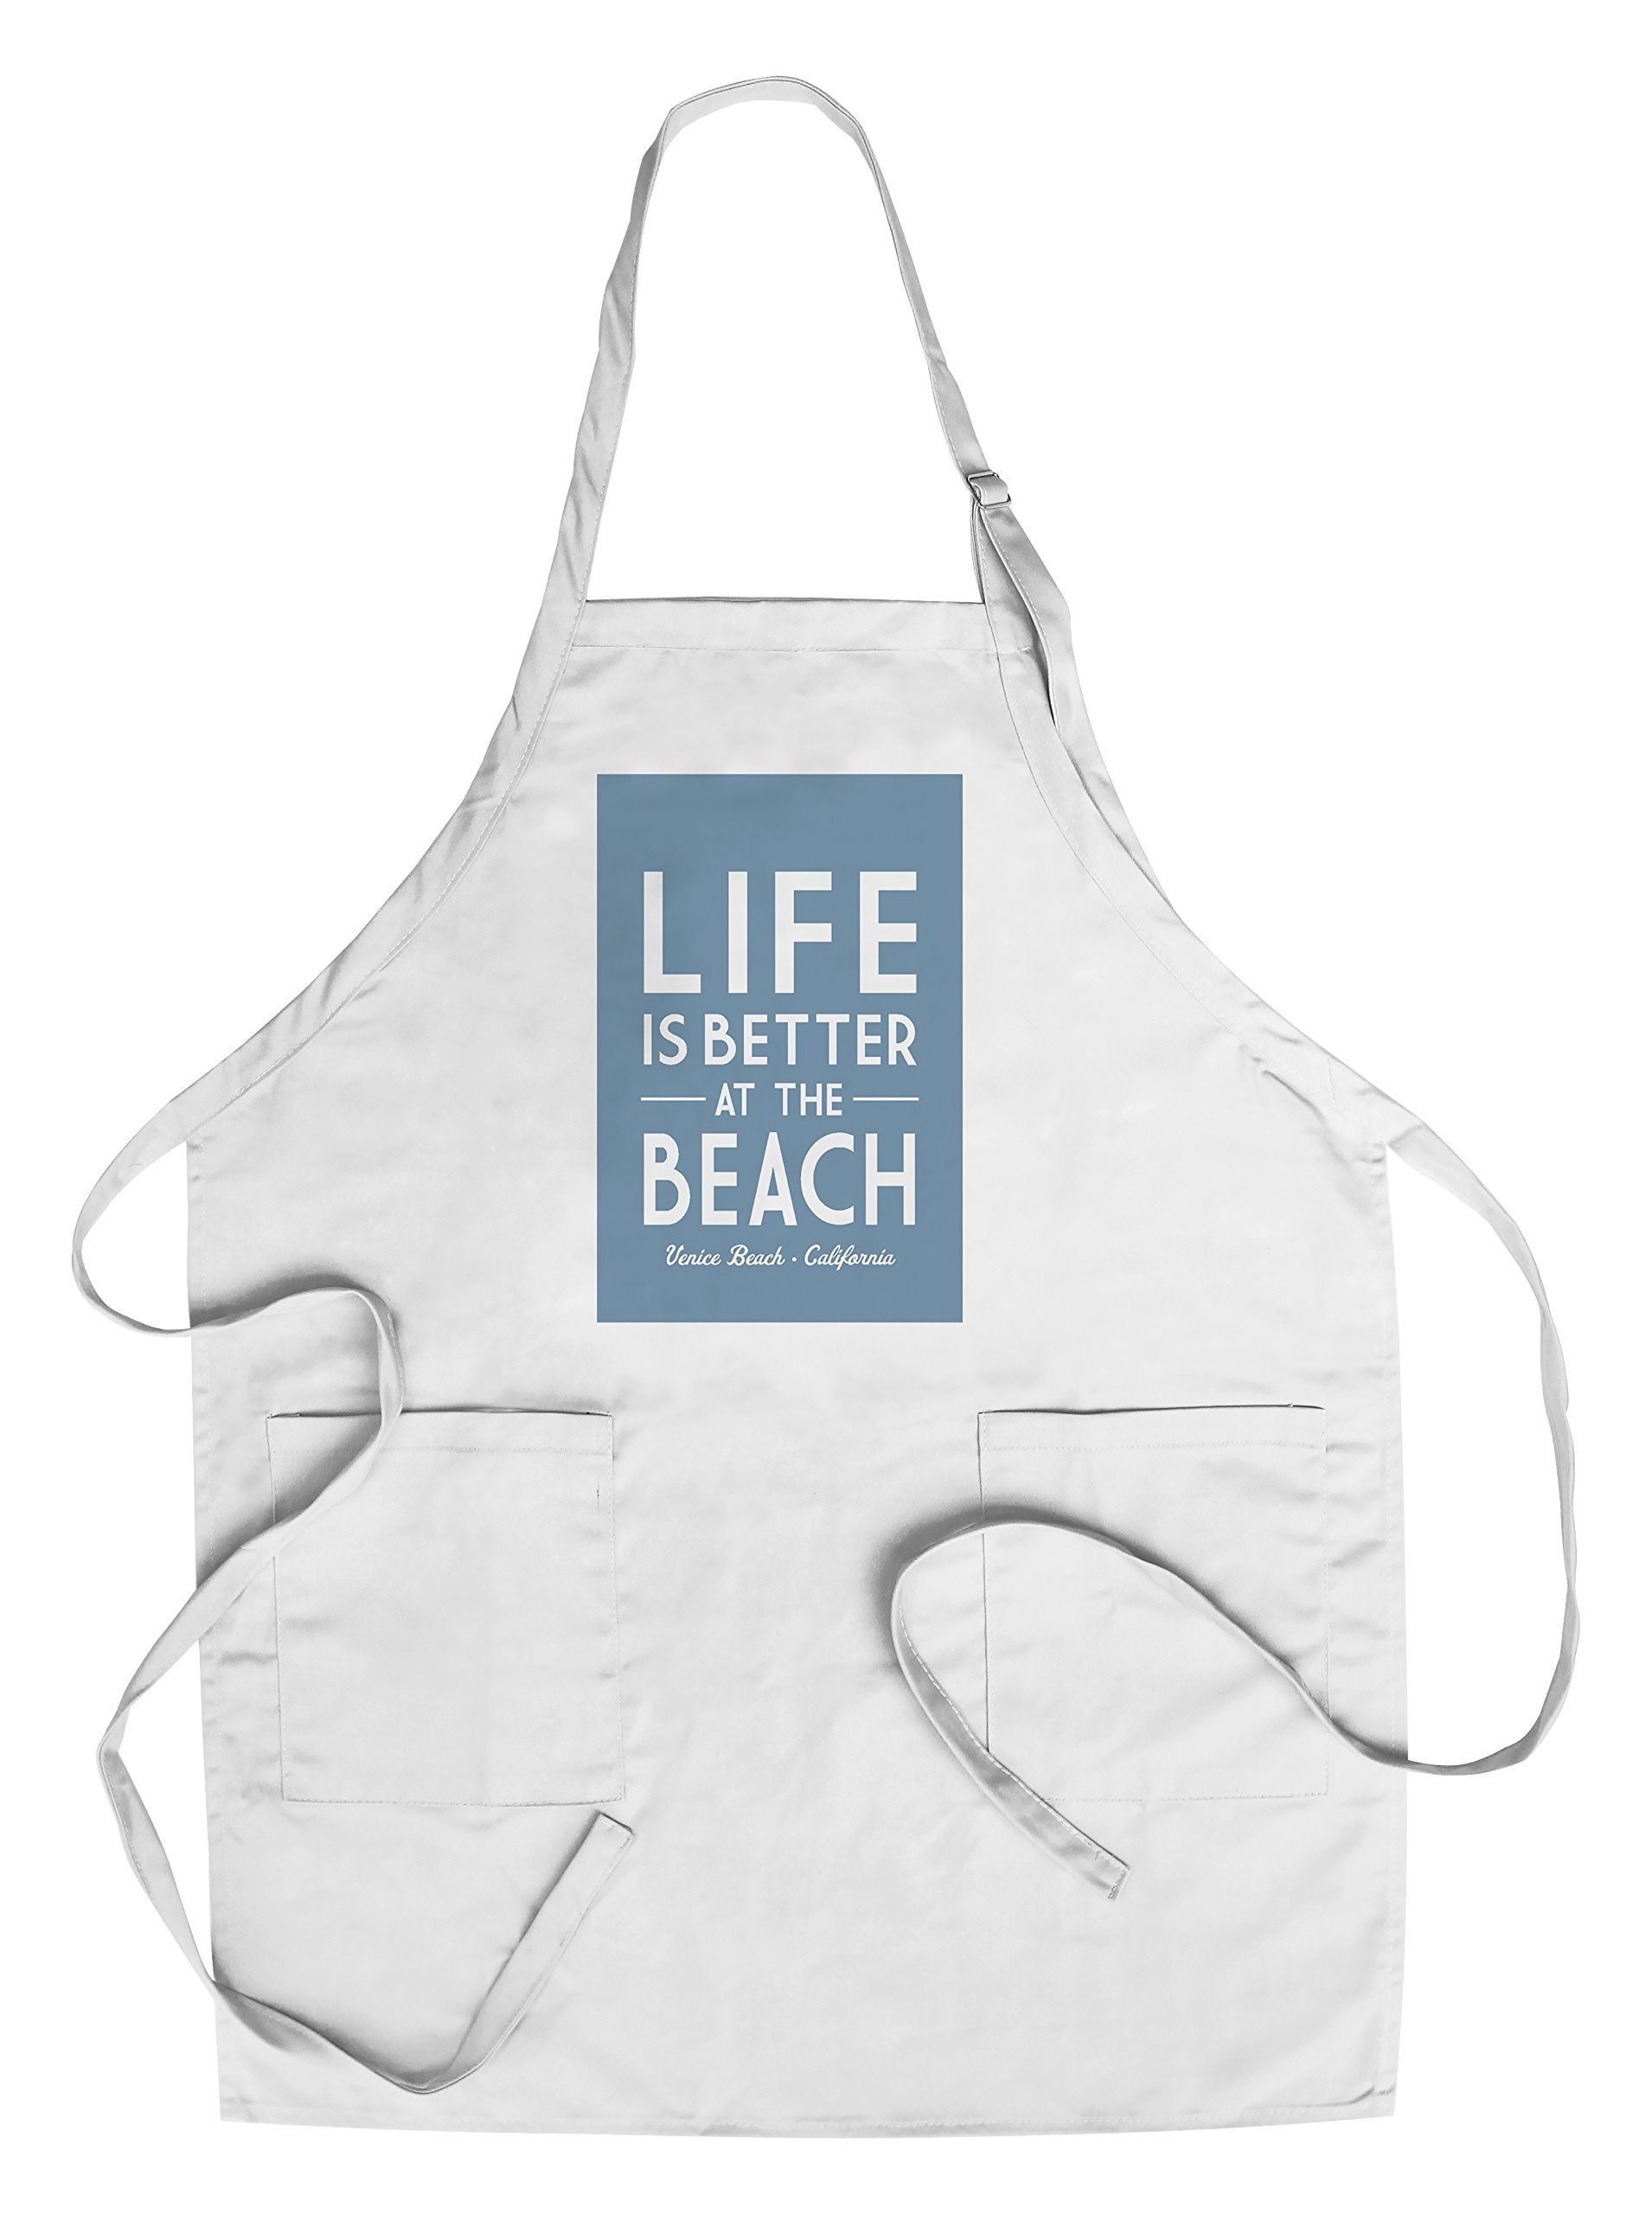 Venice Beach, California - Life is Better At The Beach - Simply Said (Cotton/Polyester Chef's Apron)